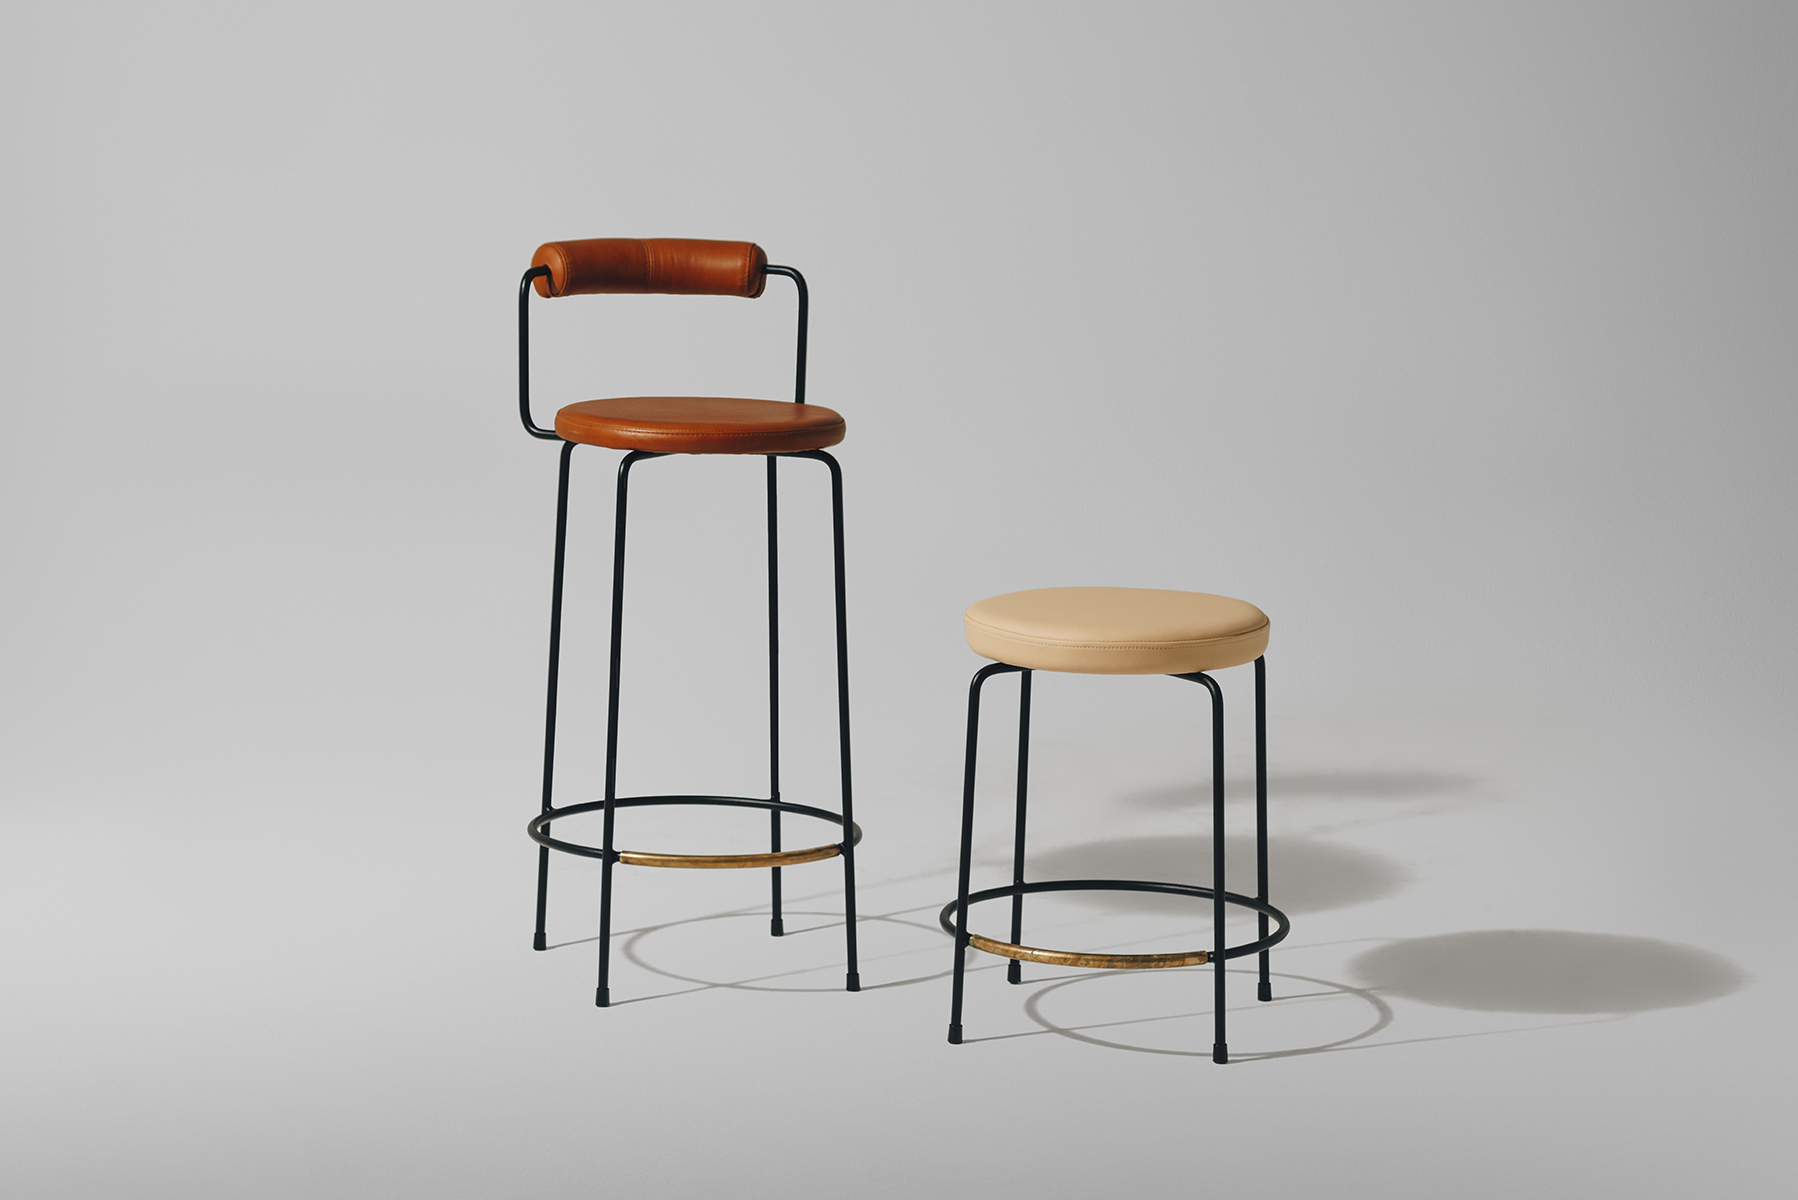 The Iva Stool and Iva Junior